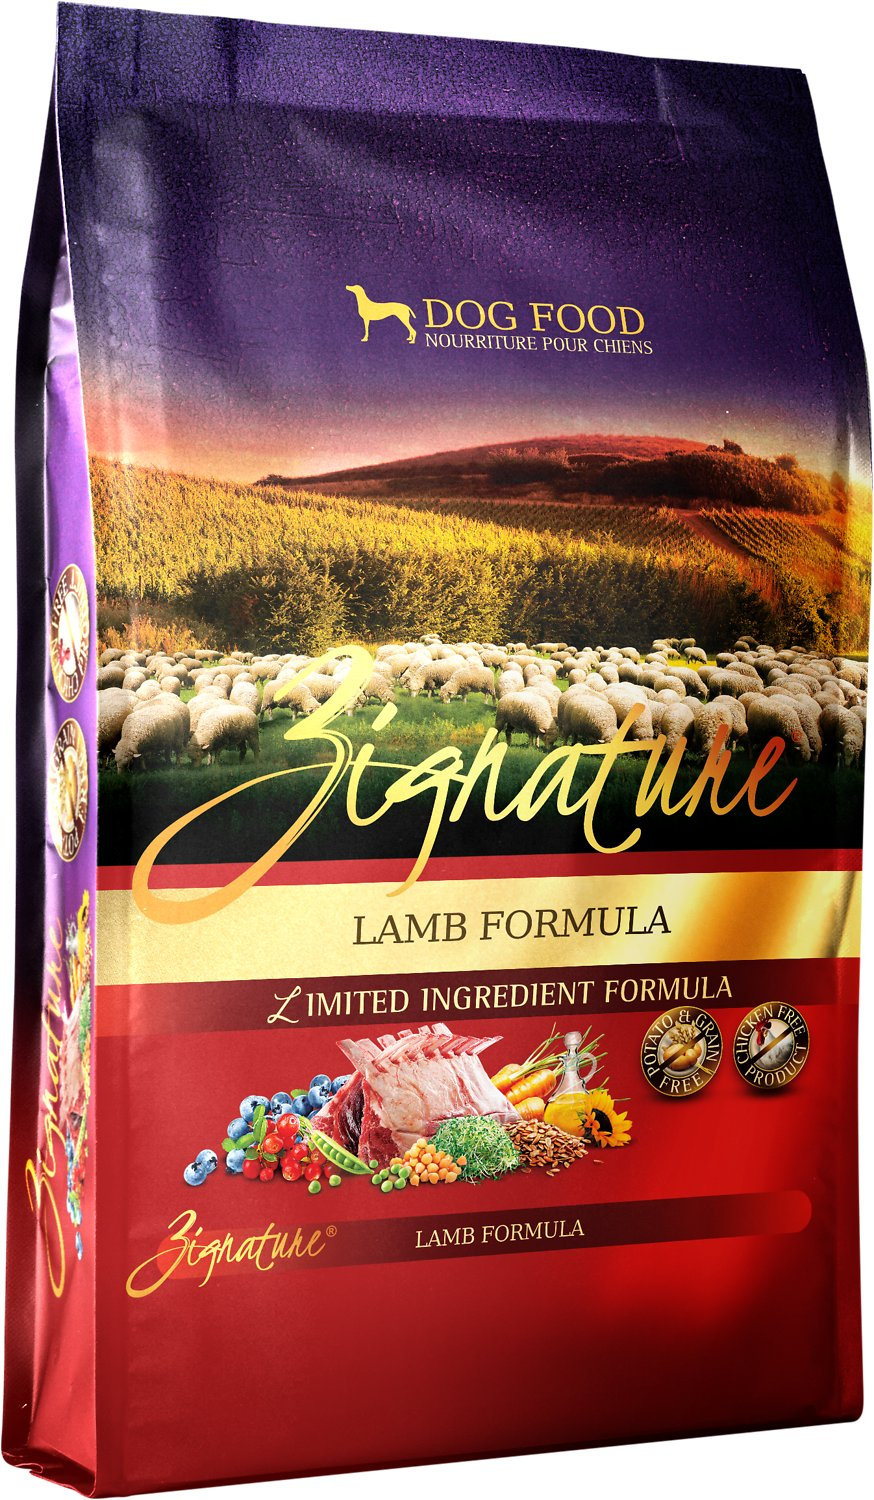 Zignature Lamb Limited Ingredient Formula Grain-Free Dry Dog Food Image